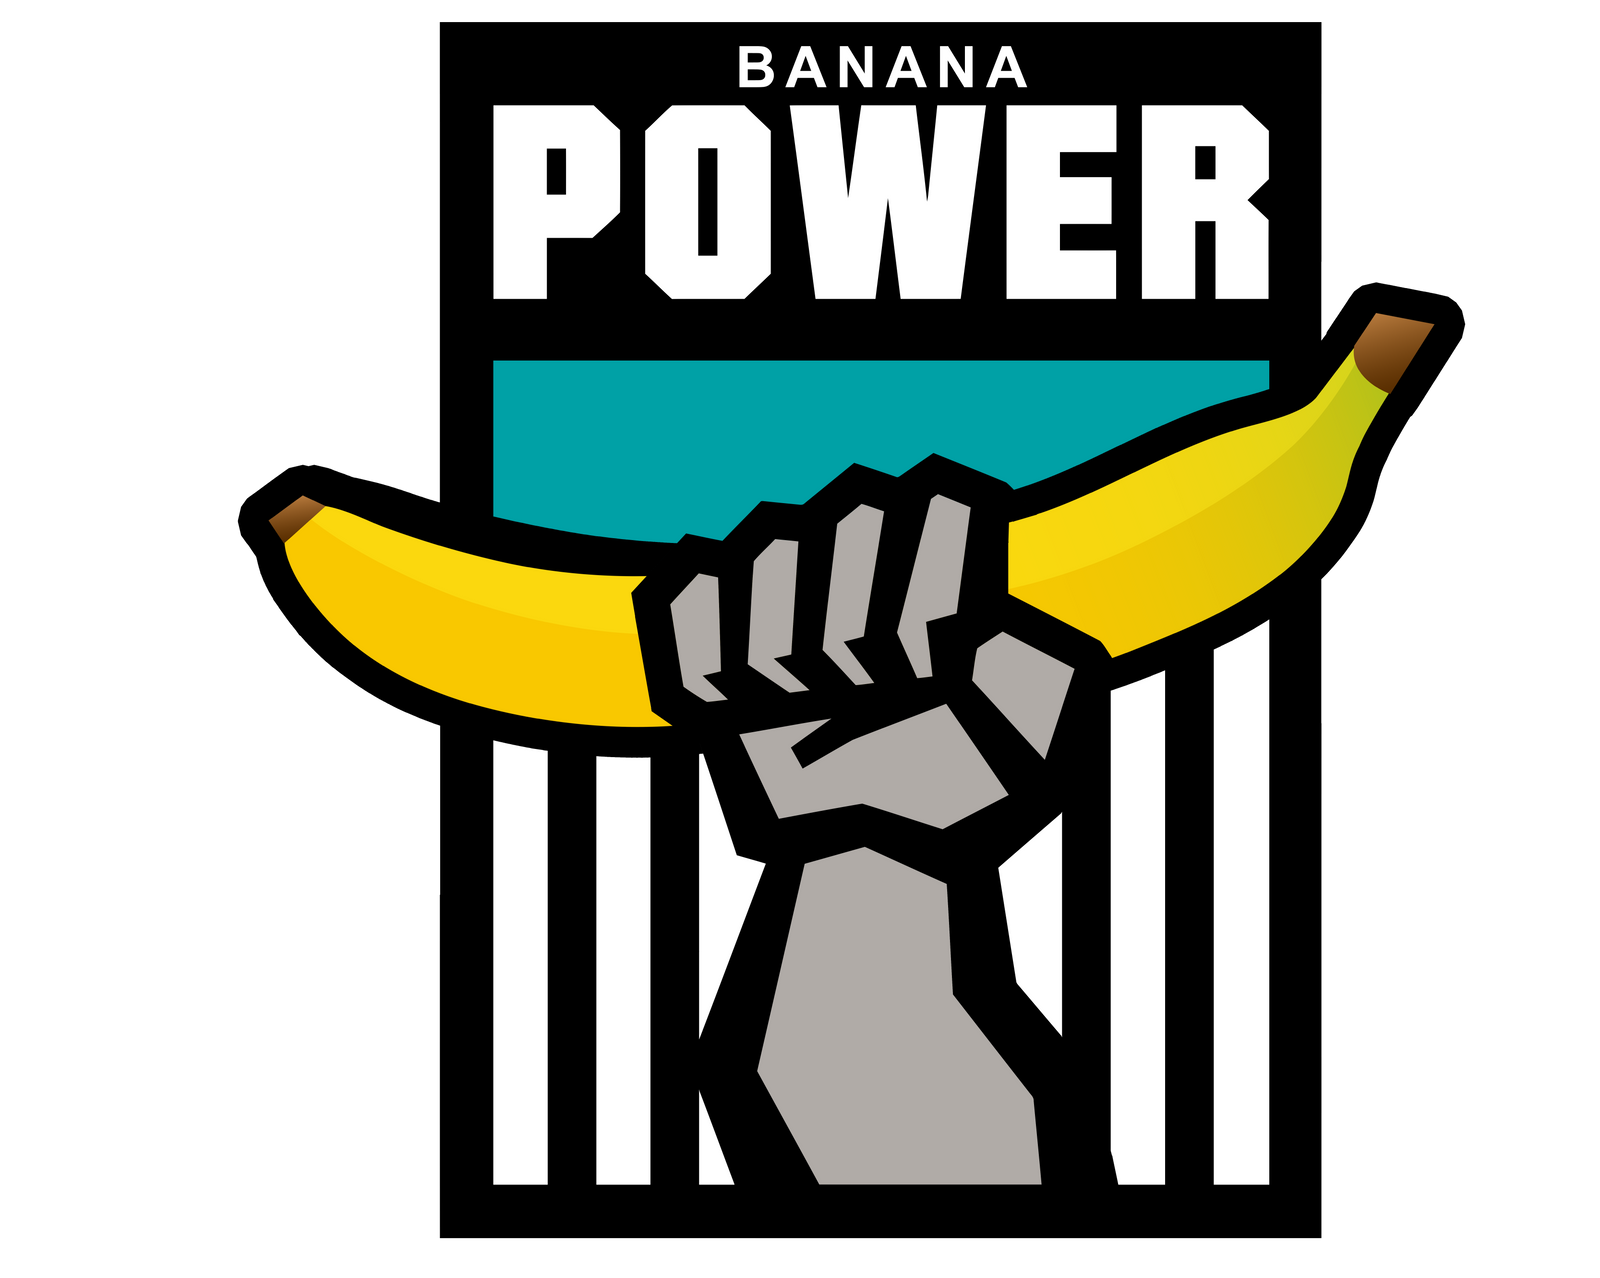 Banana Power by topher147 on DeviantArt